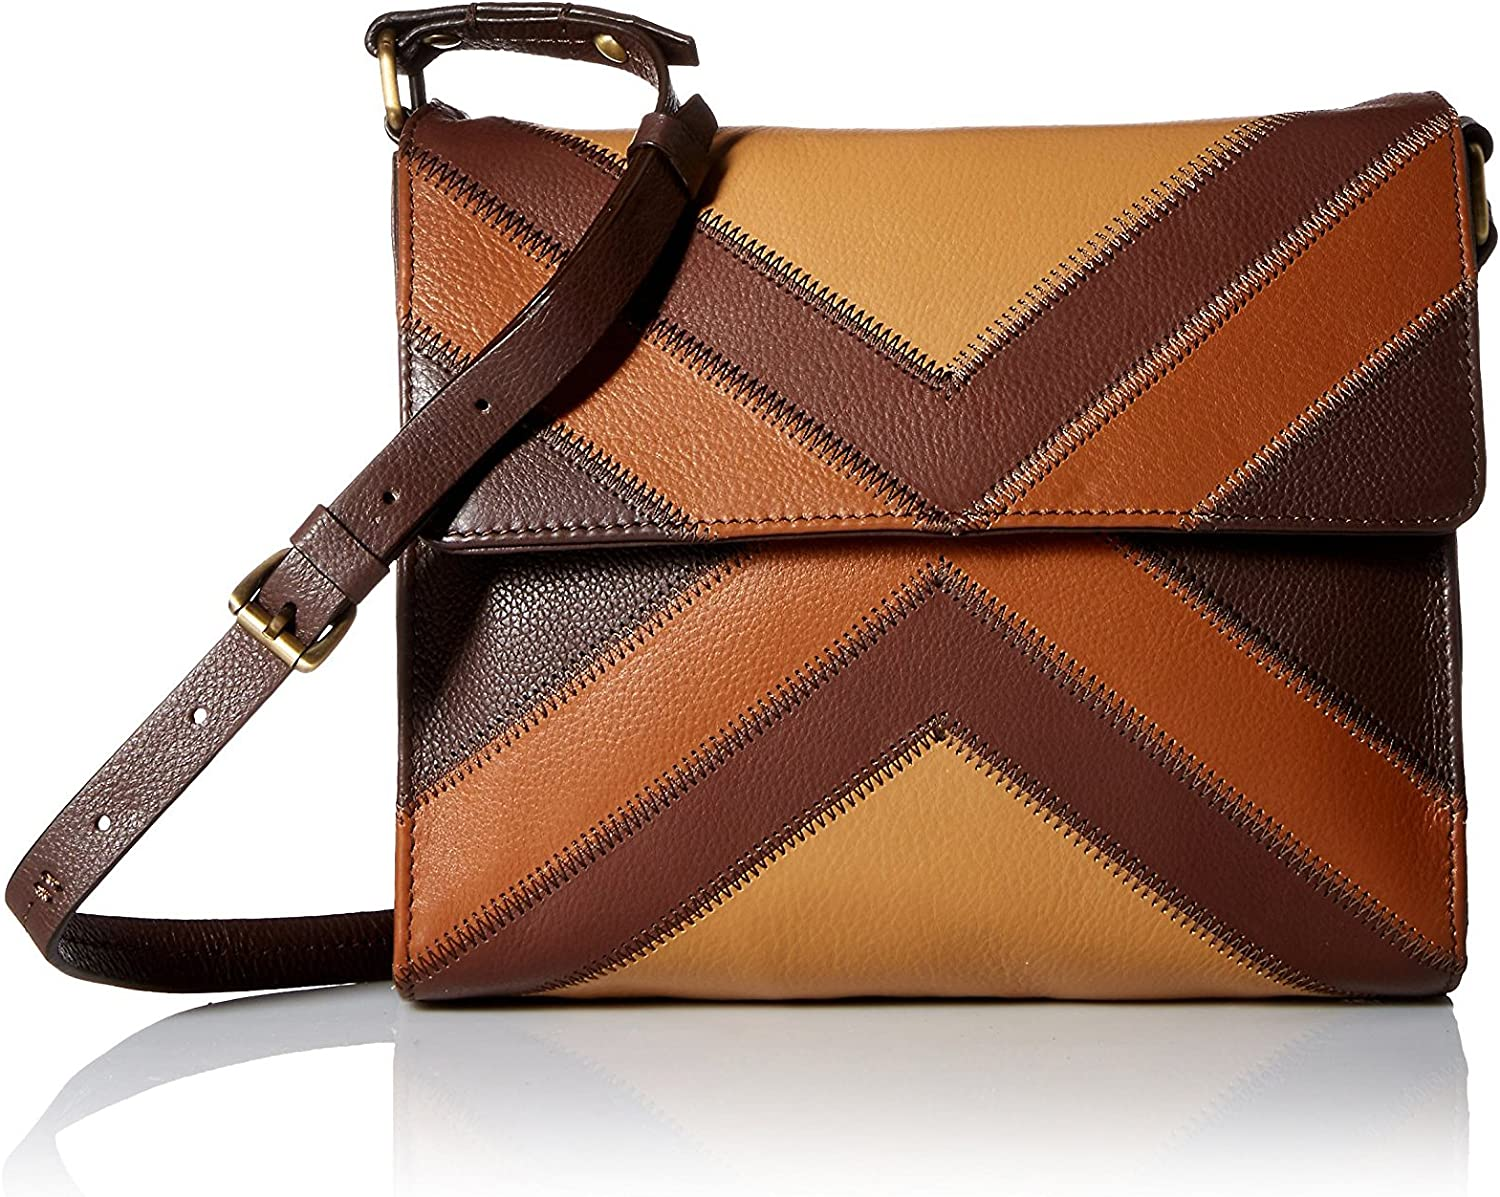 Isabella Fiore Women's Gipsy CrossBody, Brown